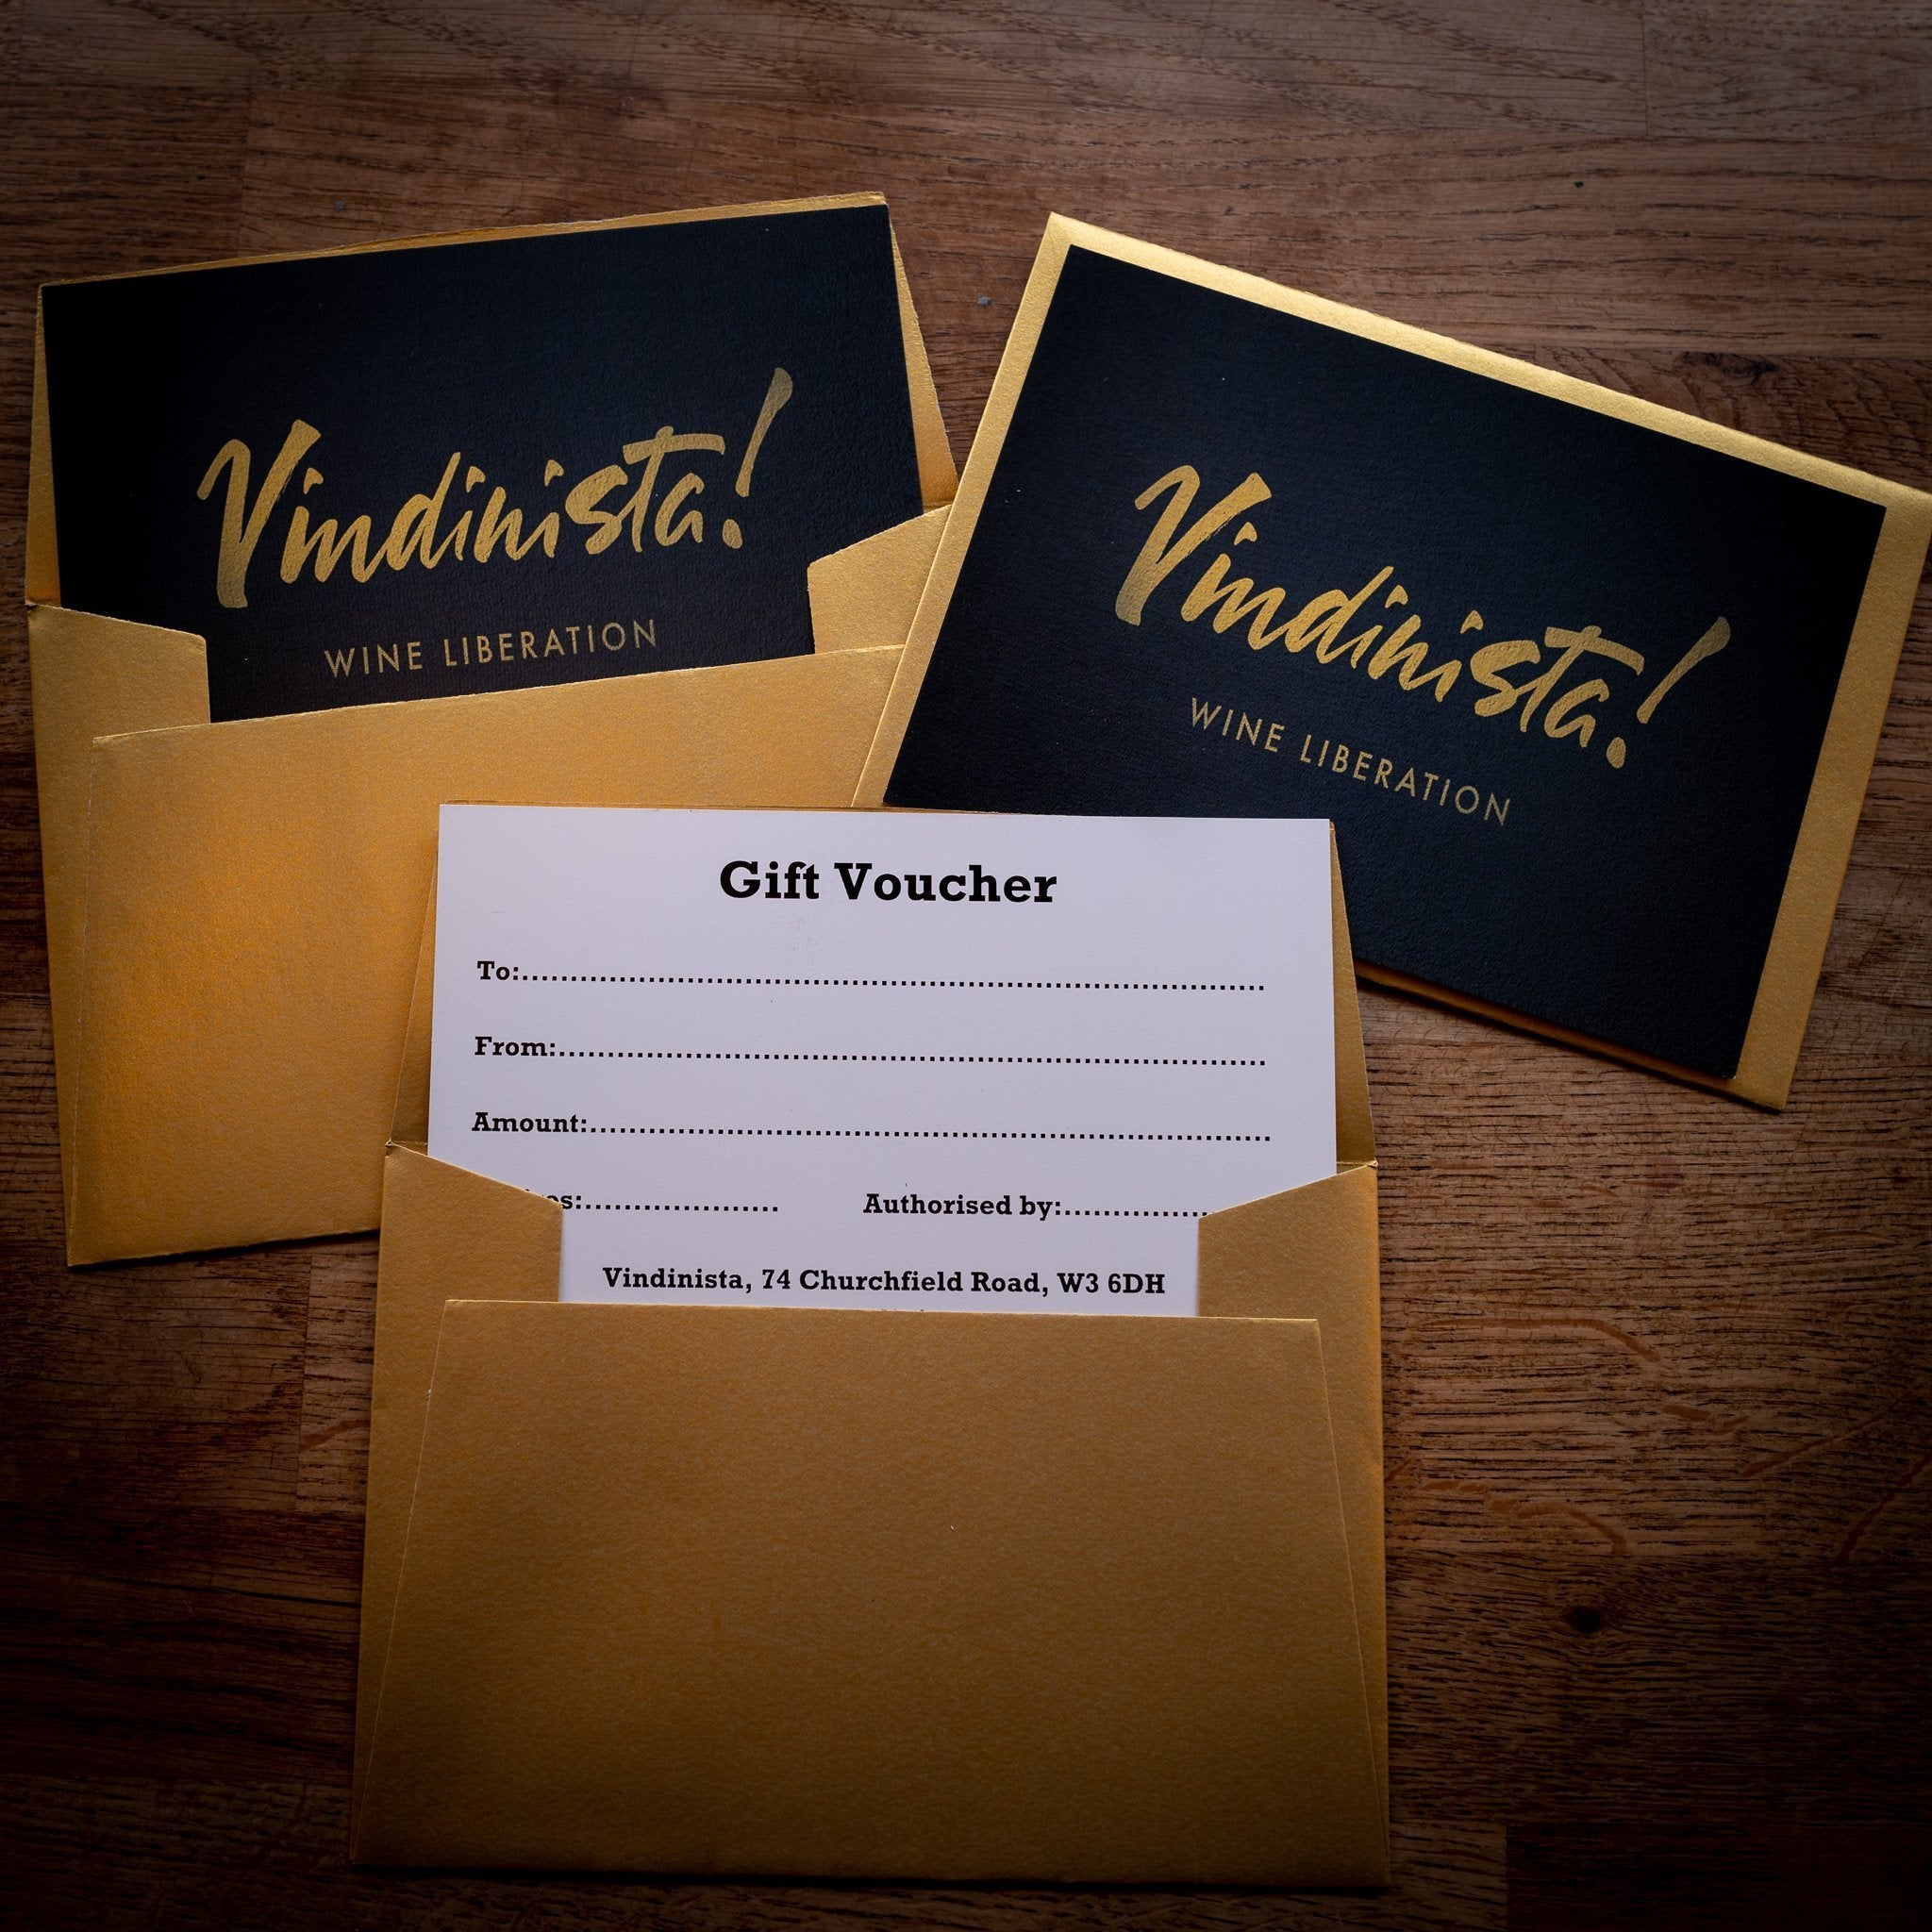 The £10 Gift Voucher - Vindinista